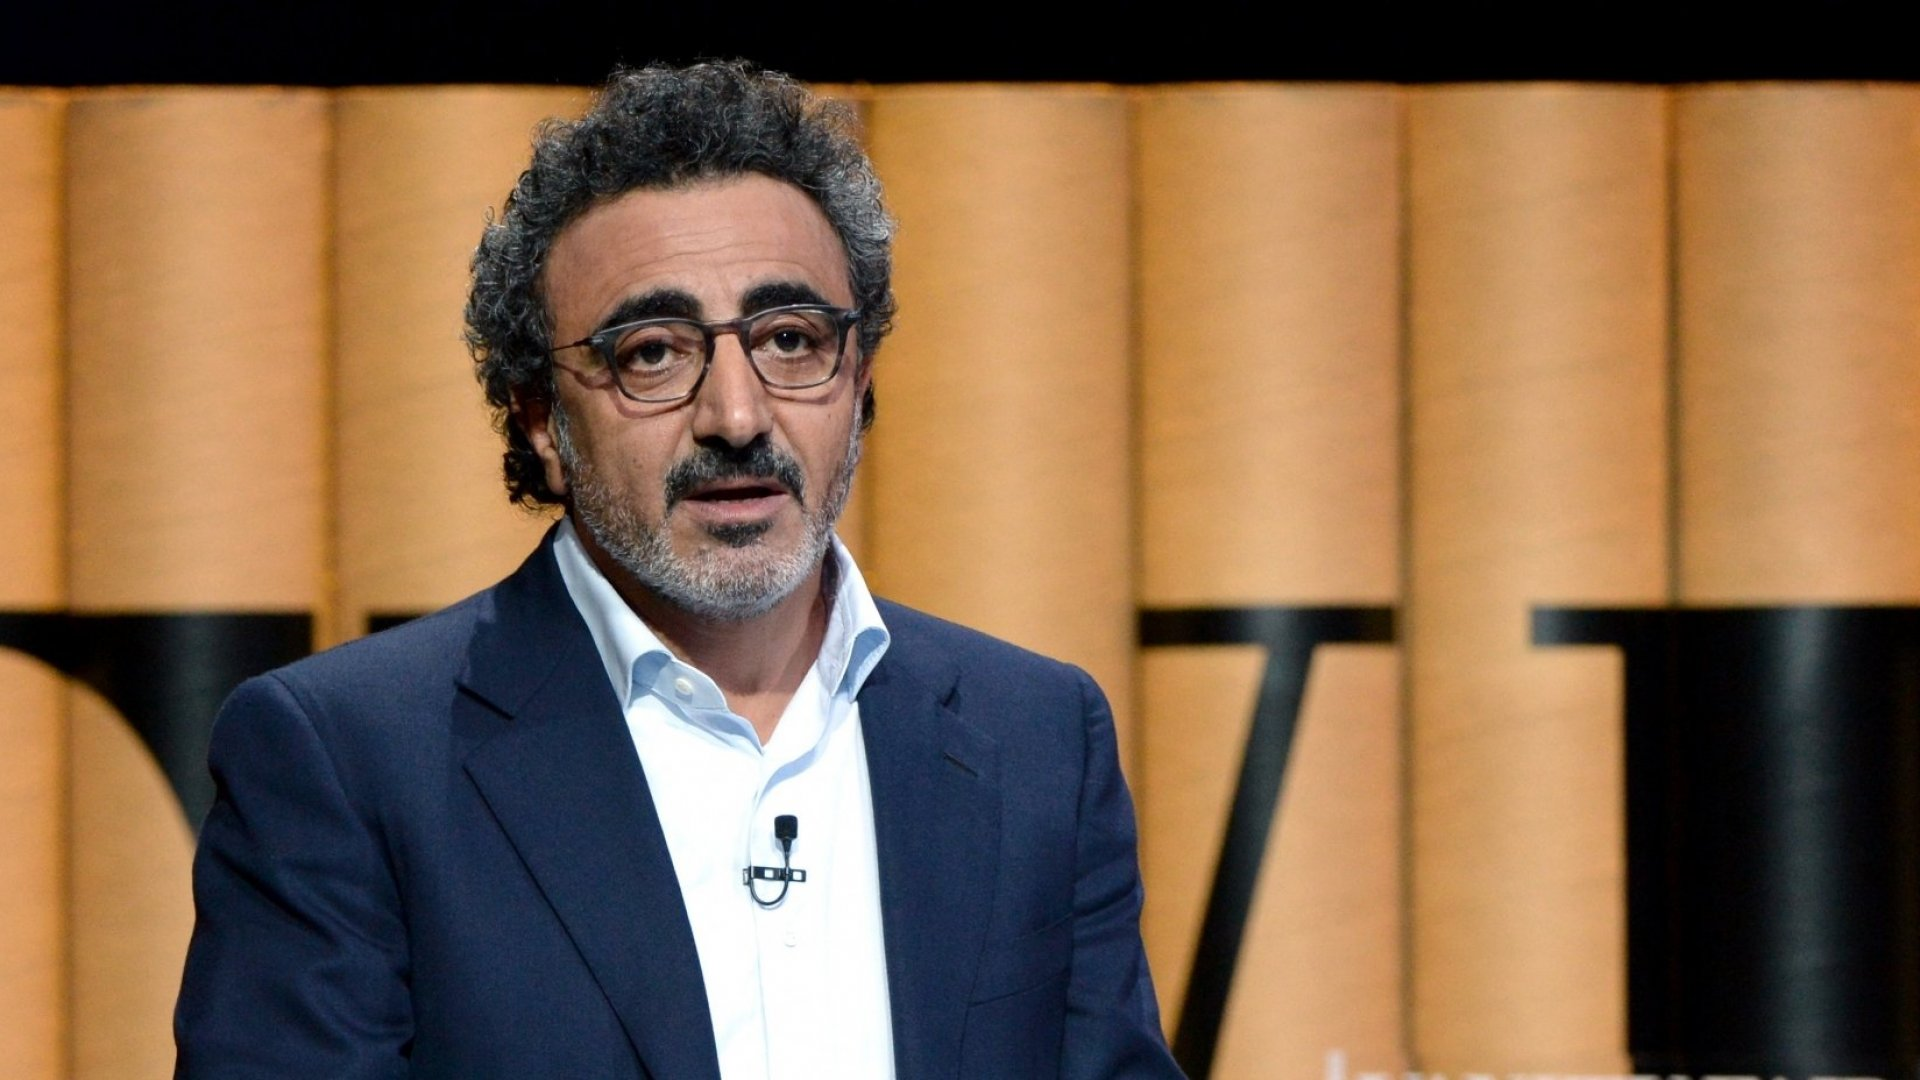 Chobani Founder Receives Death Threats for Supporting Refugees